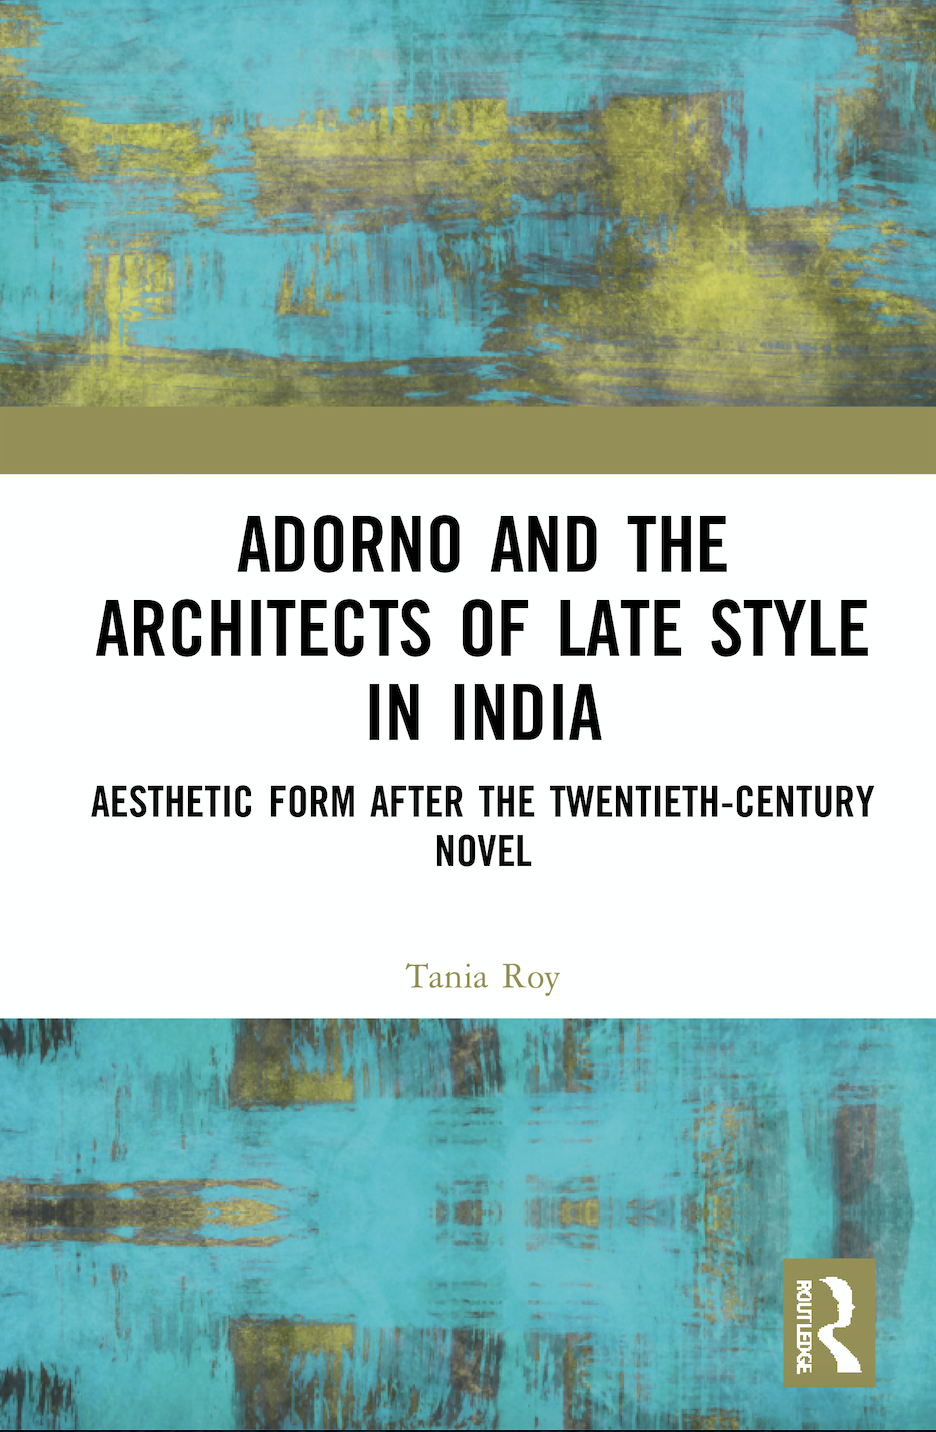 T. Roy. Adorno and the Architects of Late Style in India. Aesthetic Form after the Twentieth-century Novel